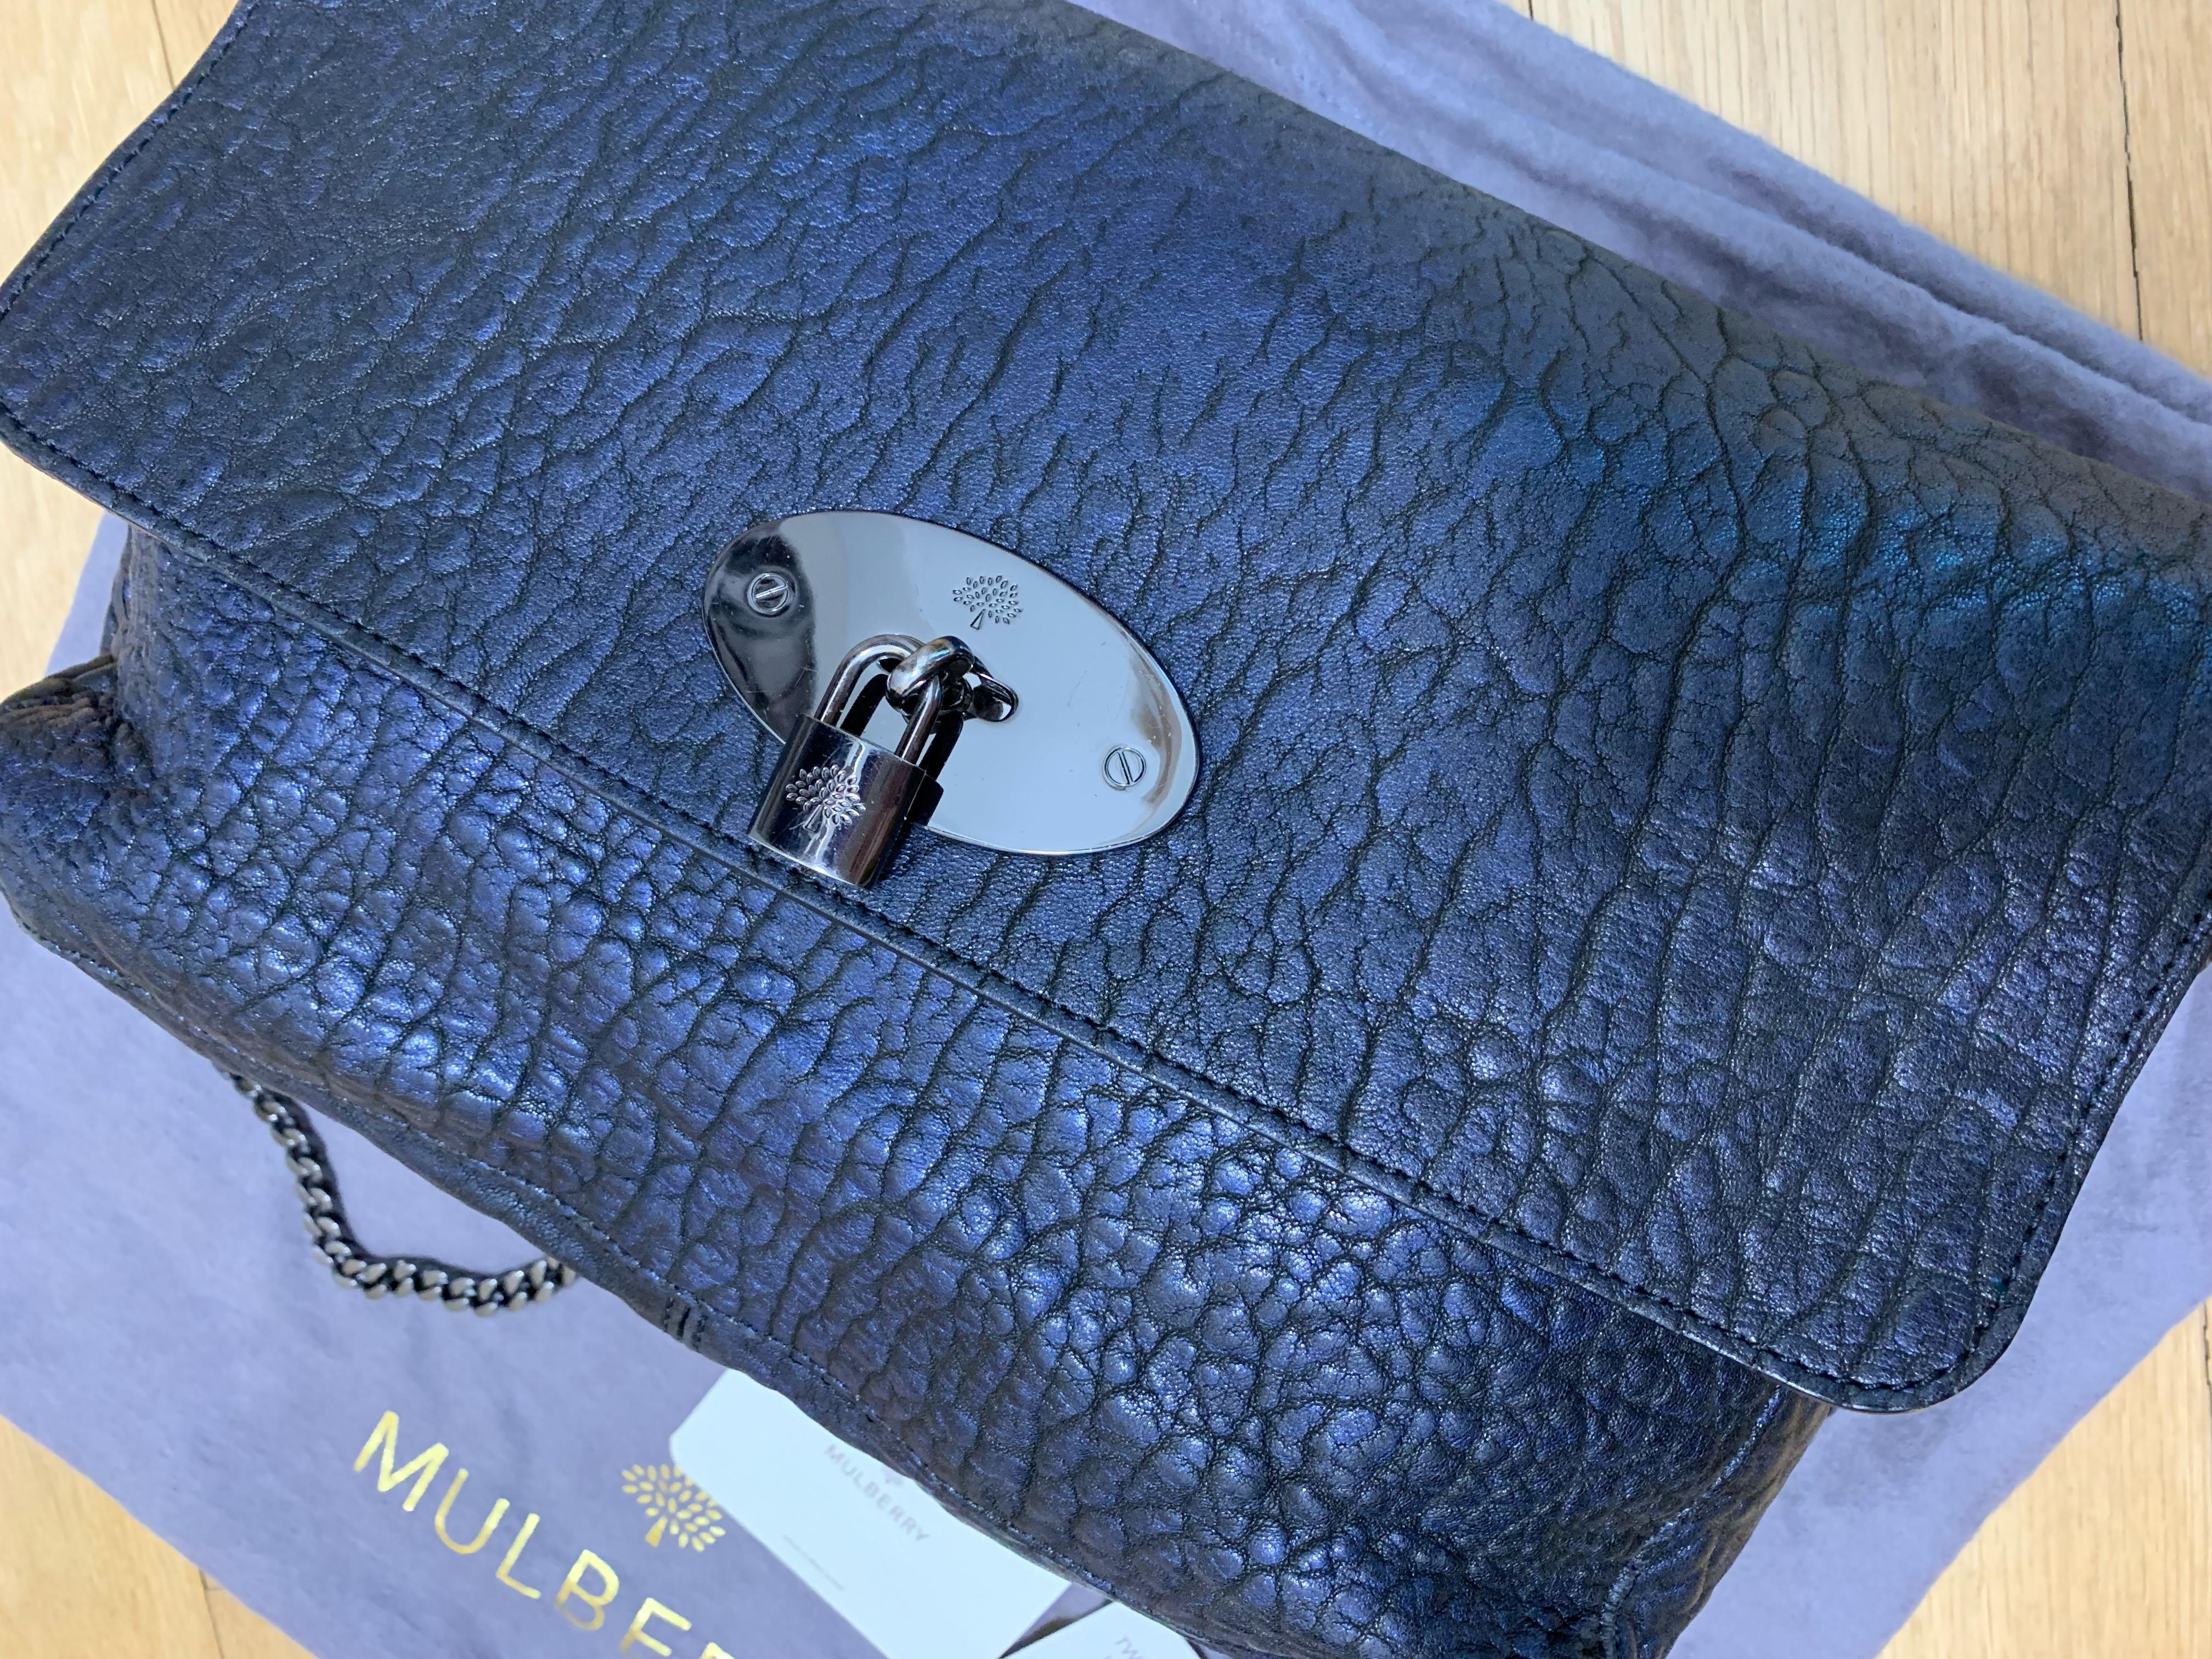 6e7f3a82ae Mulberry Lily Metallic Navy Two tone lambskin handbag bag (like bayswater)  on Carousell